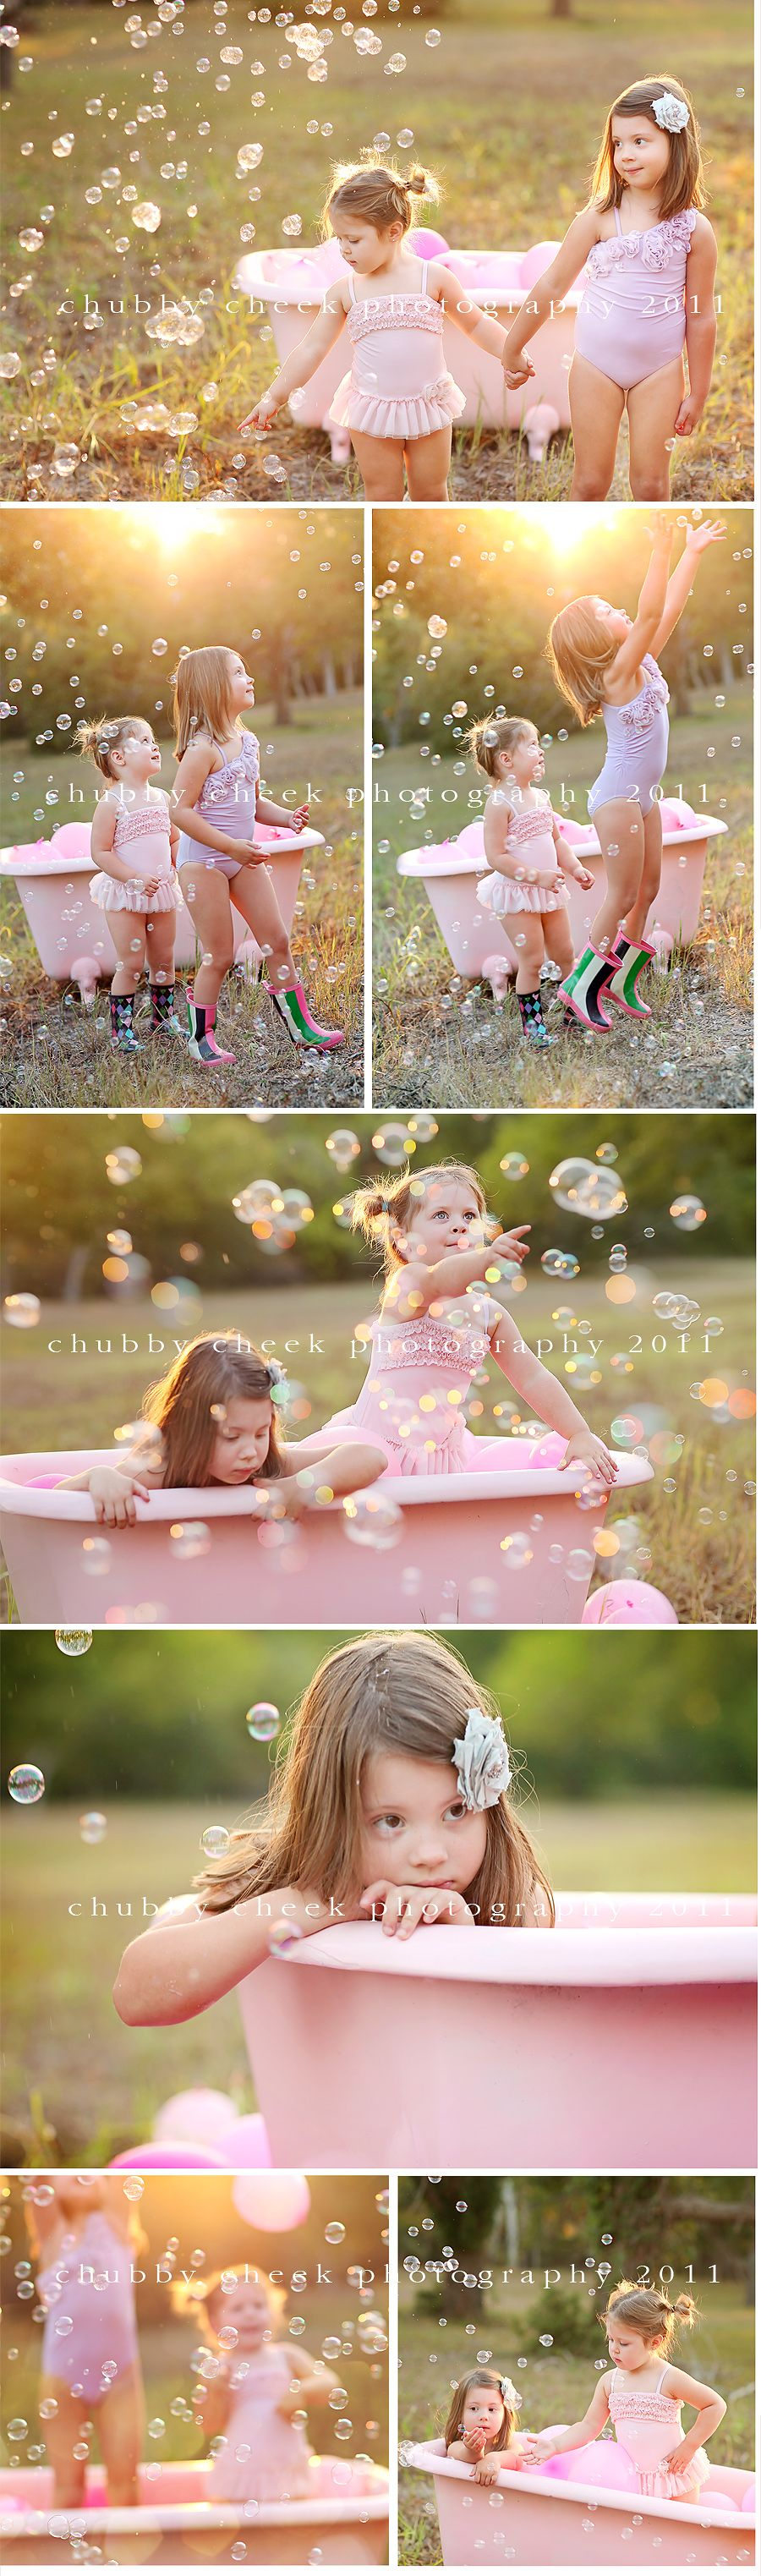 beautiful sunlight, bubbles and a pink tub. delightful! | children ...